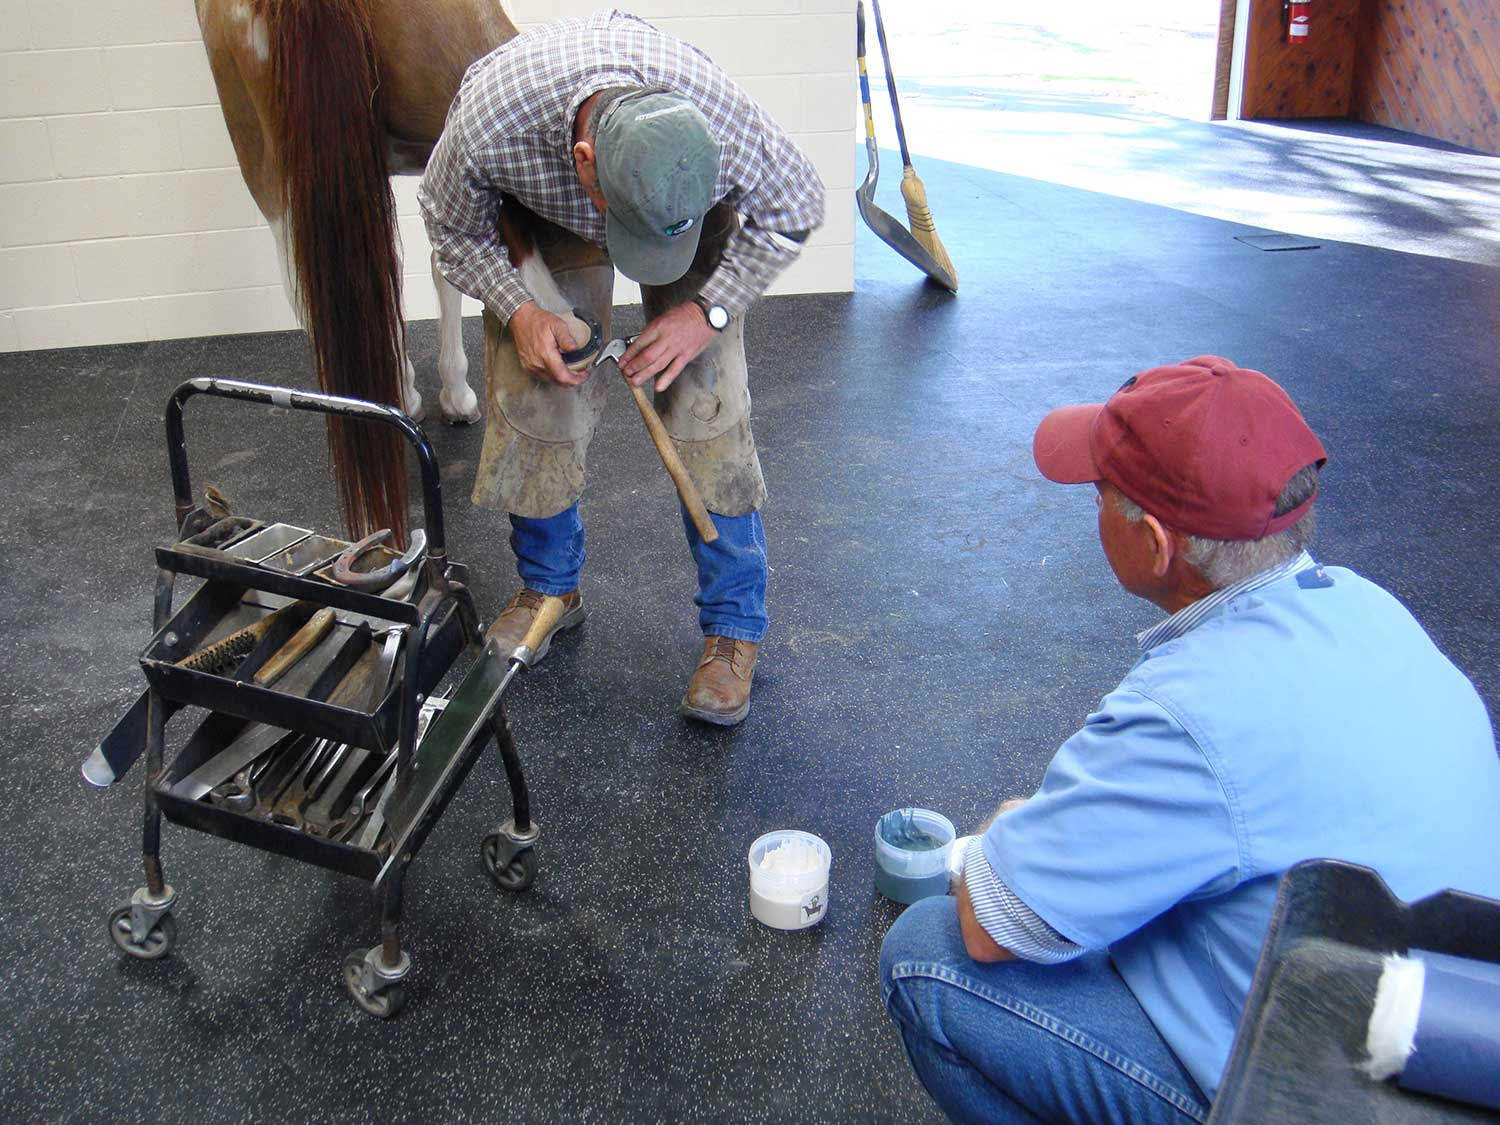 Dr. Jensen and farrier Pete Healey